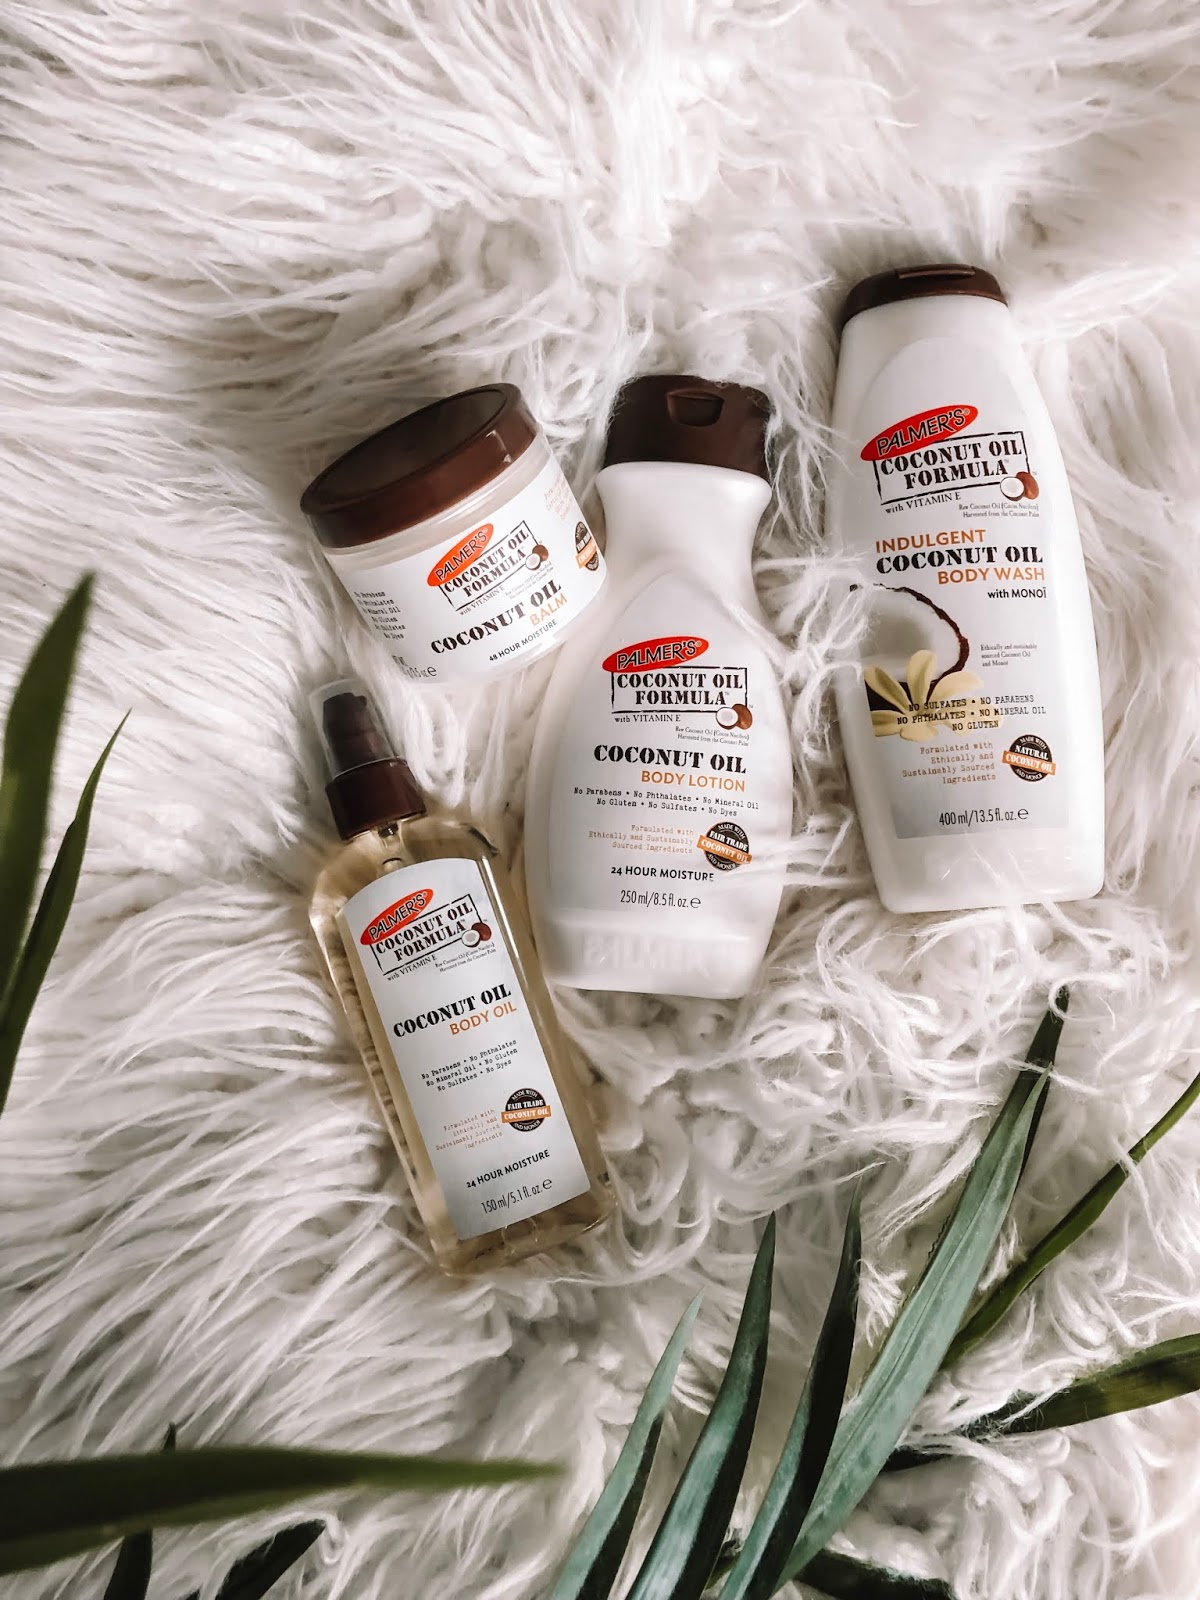 Amanda Burrows of the fashion, beauty, and travel blog Affordable by Amanda Shares Her Tips for How to Get Your Dry Skin on Track as the Seasons Change. Palmer's® Coconut Oil Formula Lotion, Palmer's® Coconut Oil Body Oil, and Palmer's® Coconut Oil Formula Body Balm